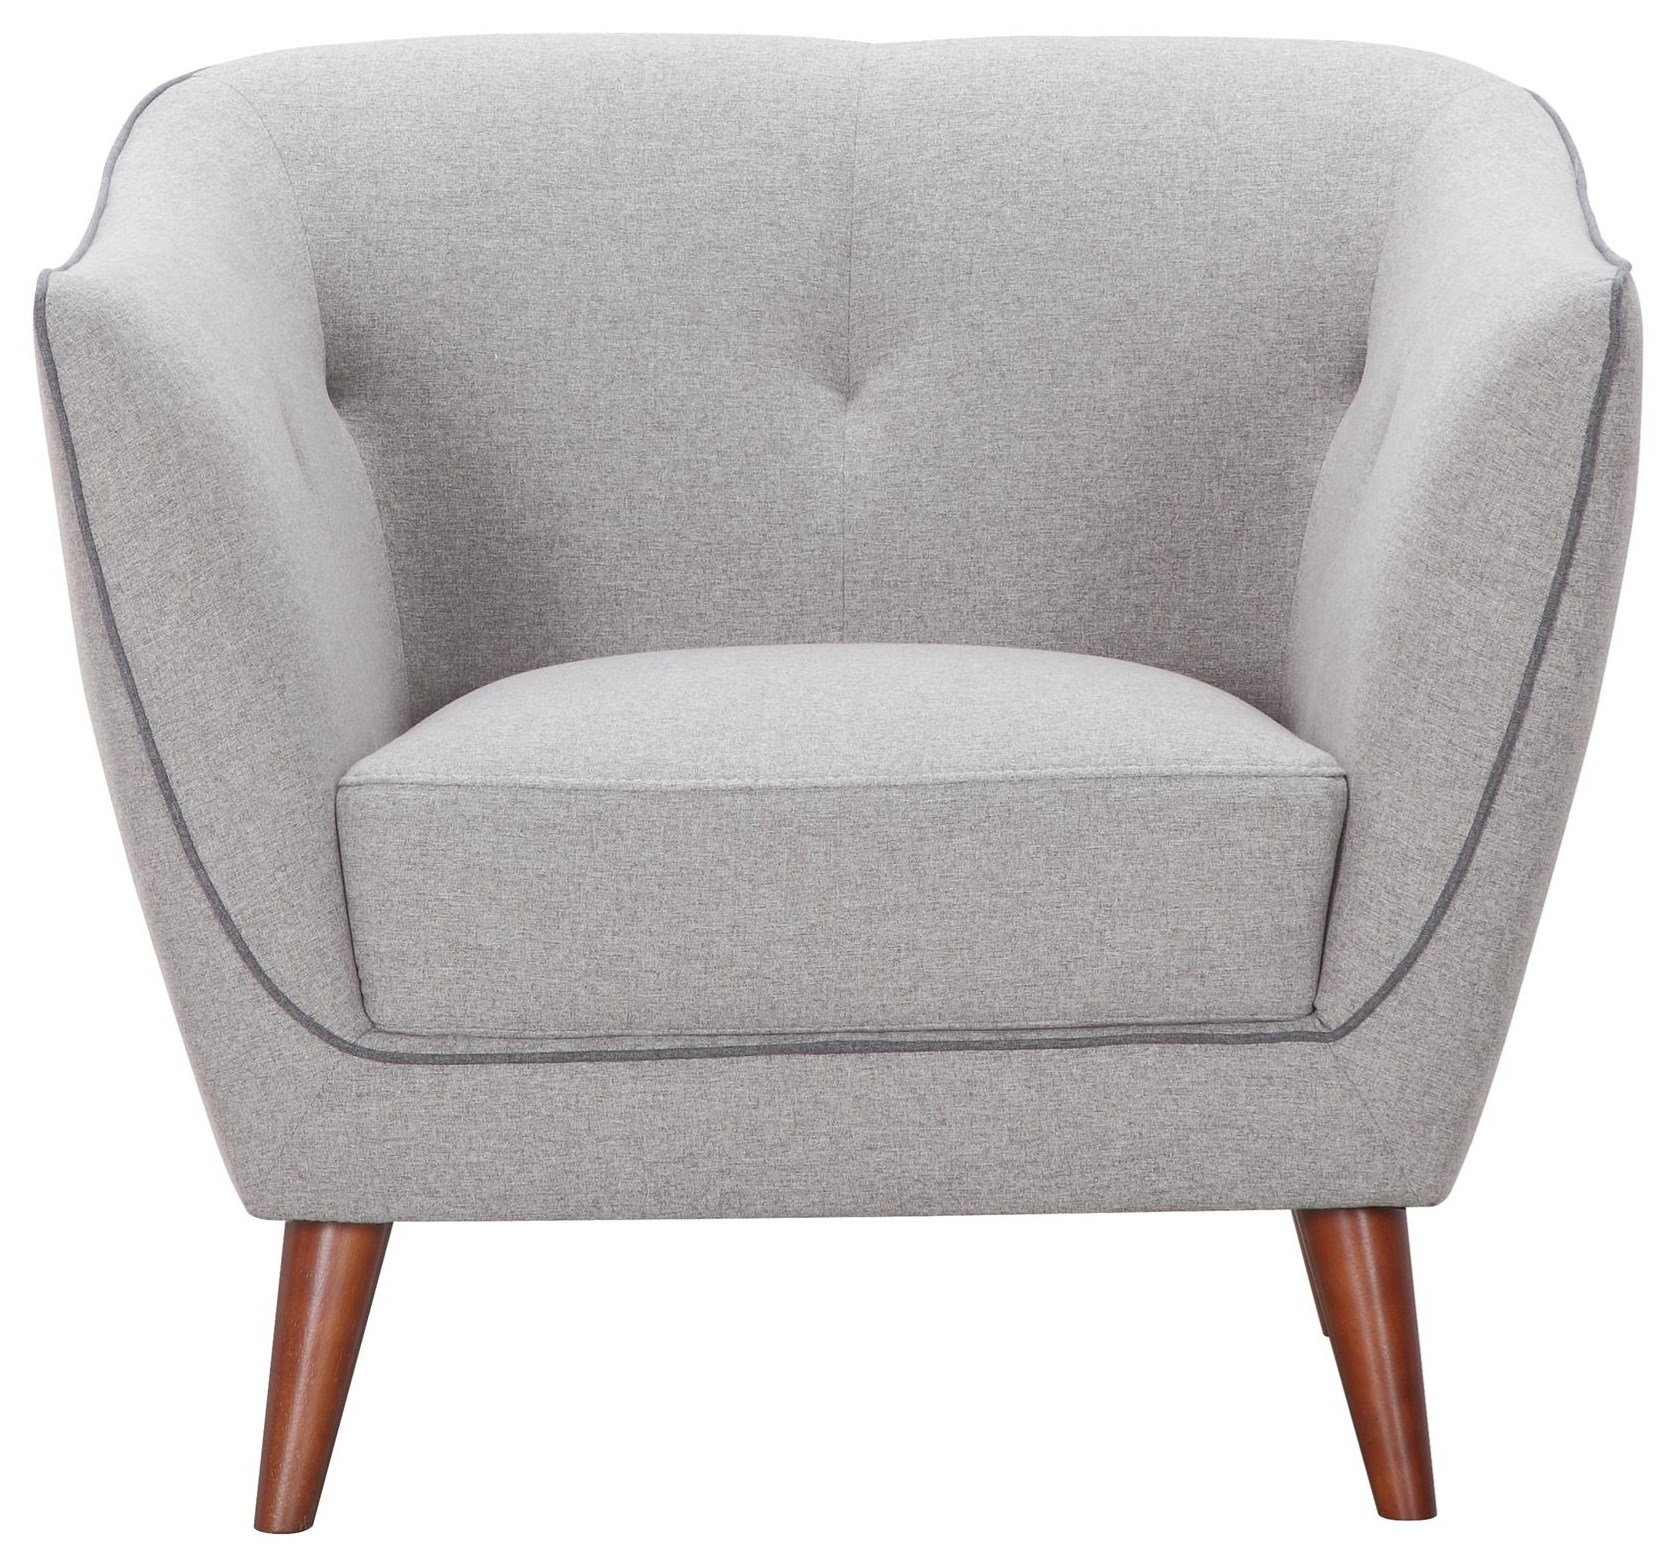 Sunday Chair by Urban Chic at Beck's Furniture